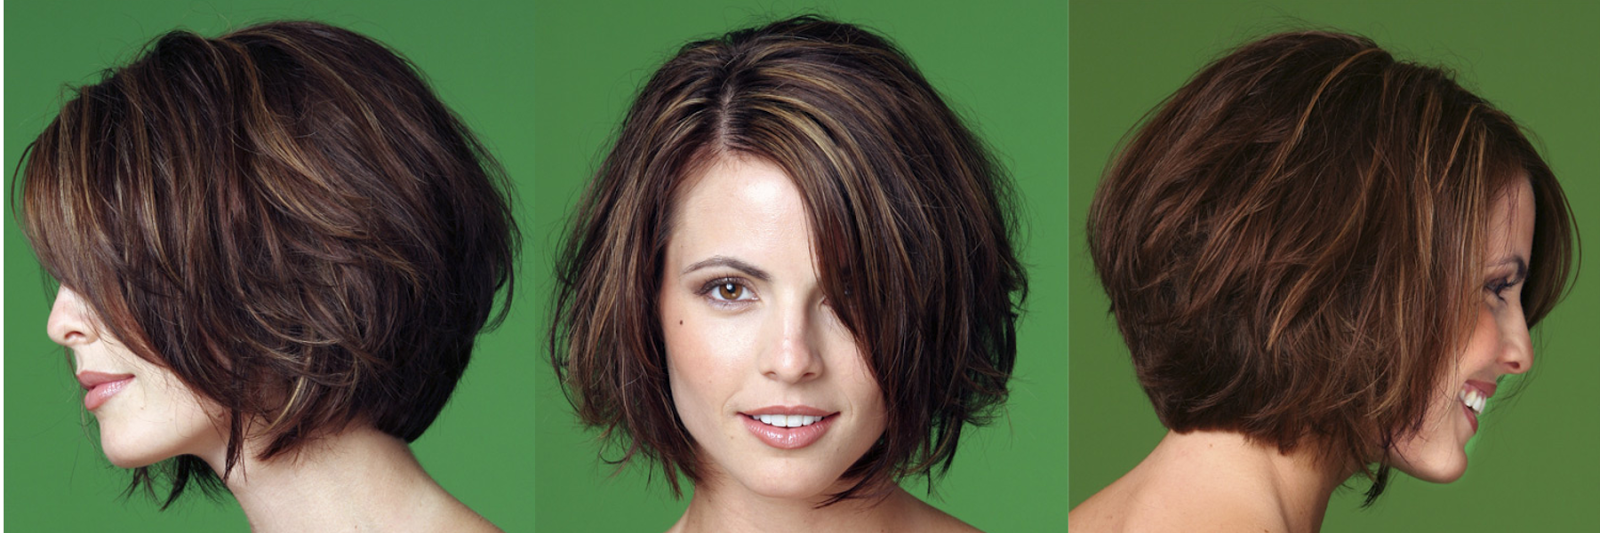 http://www.thehairstyler.com/hairstyles/casual/medium/straight/yellow-strawberry-global-salon-sarasota-fl-usa-8774